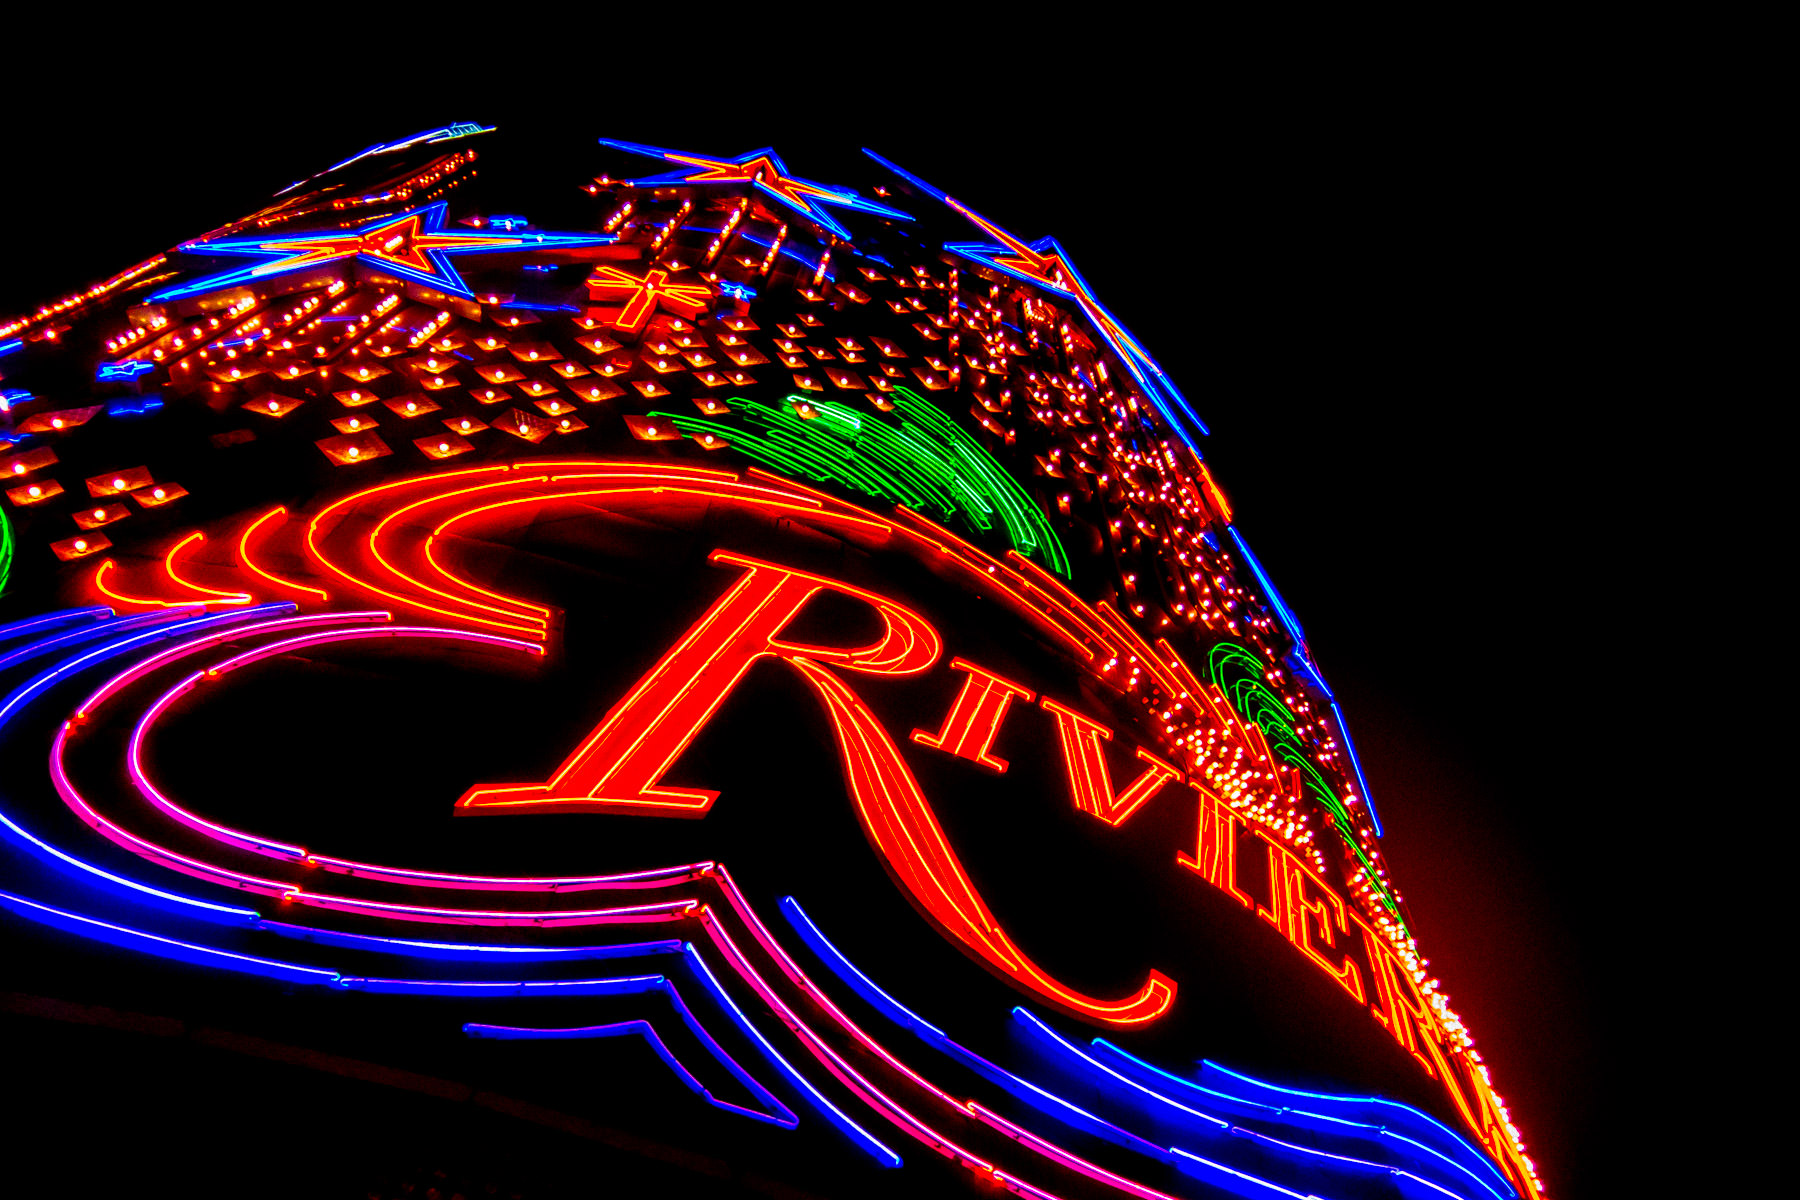 Detail of the Riviera Hotel and Casino's sign, Las Vegas.